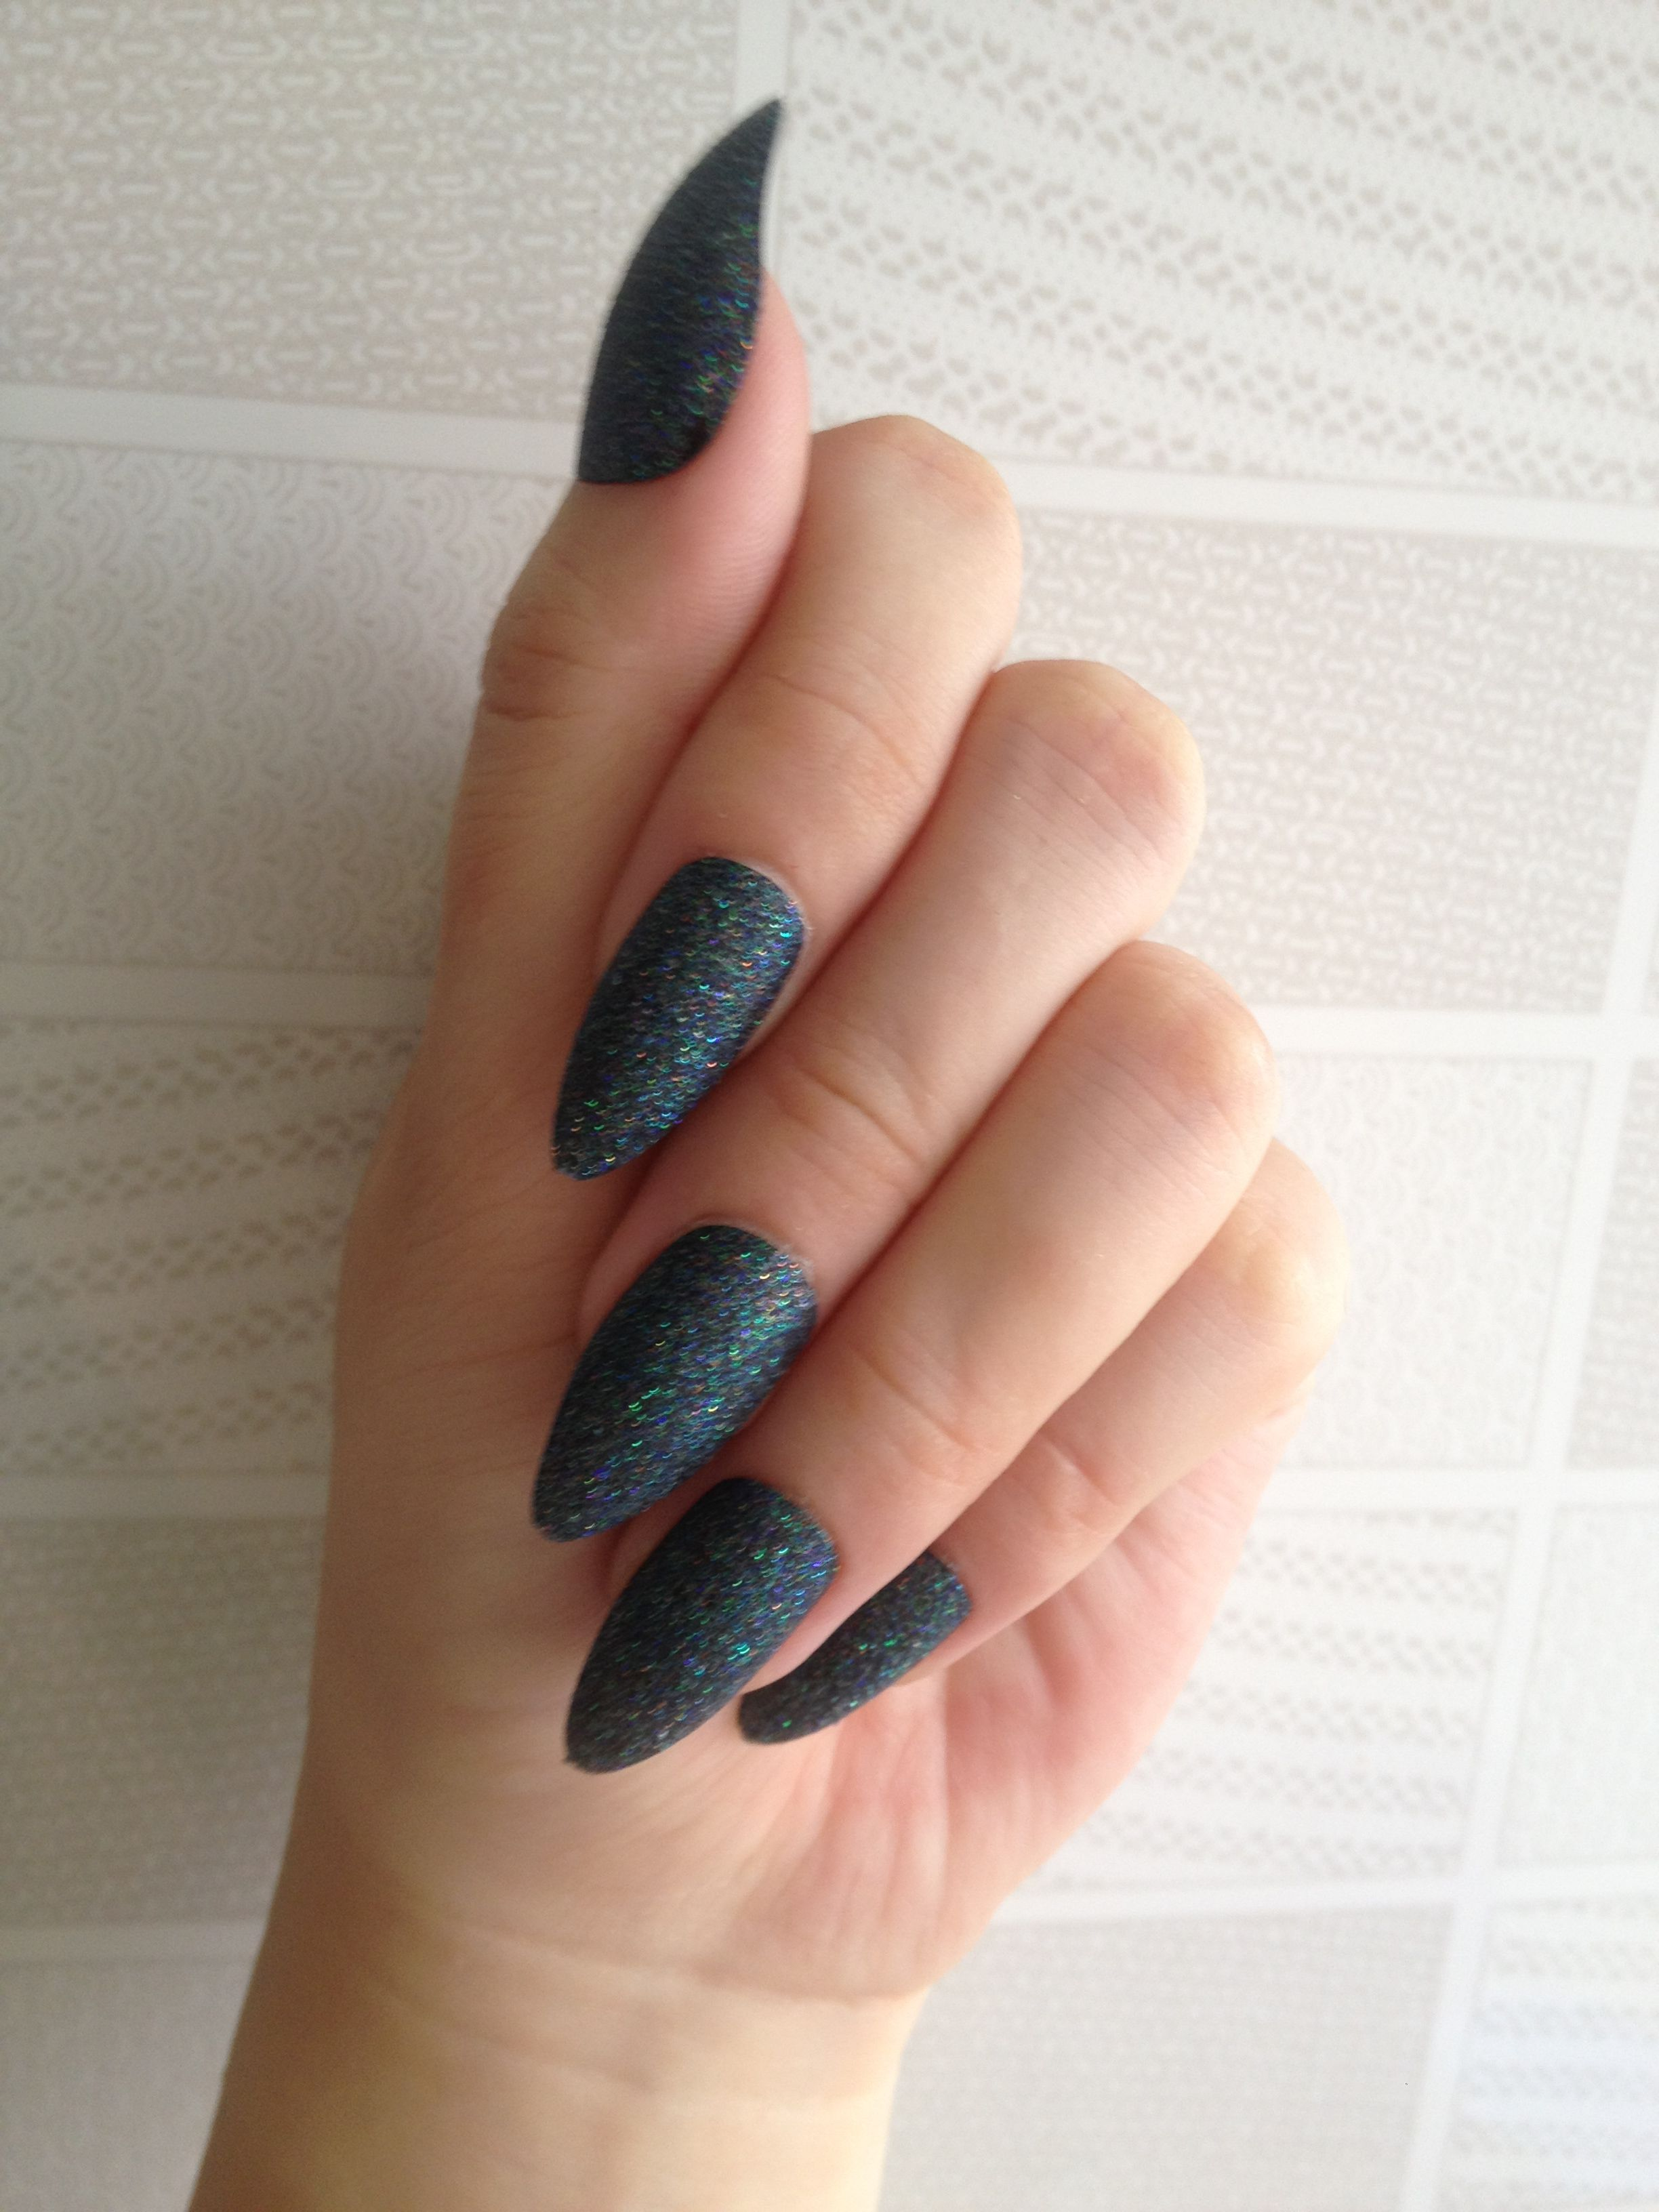 Black Glitter Effect Pin Nails Talon Acrylic Nail Tips